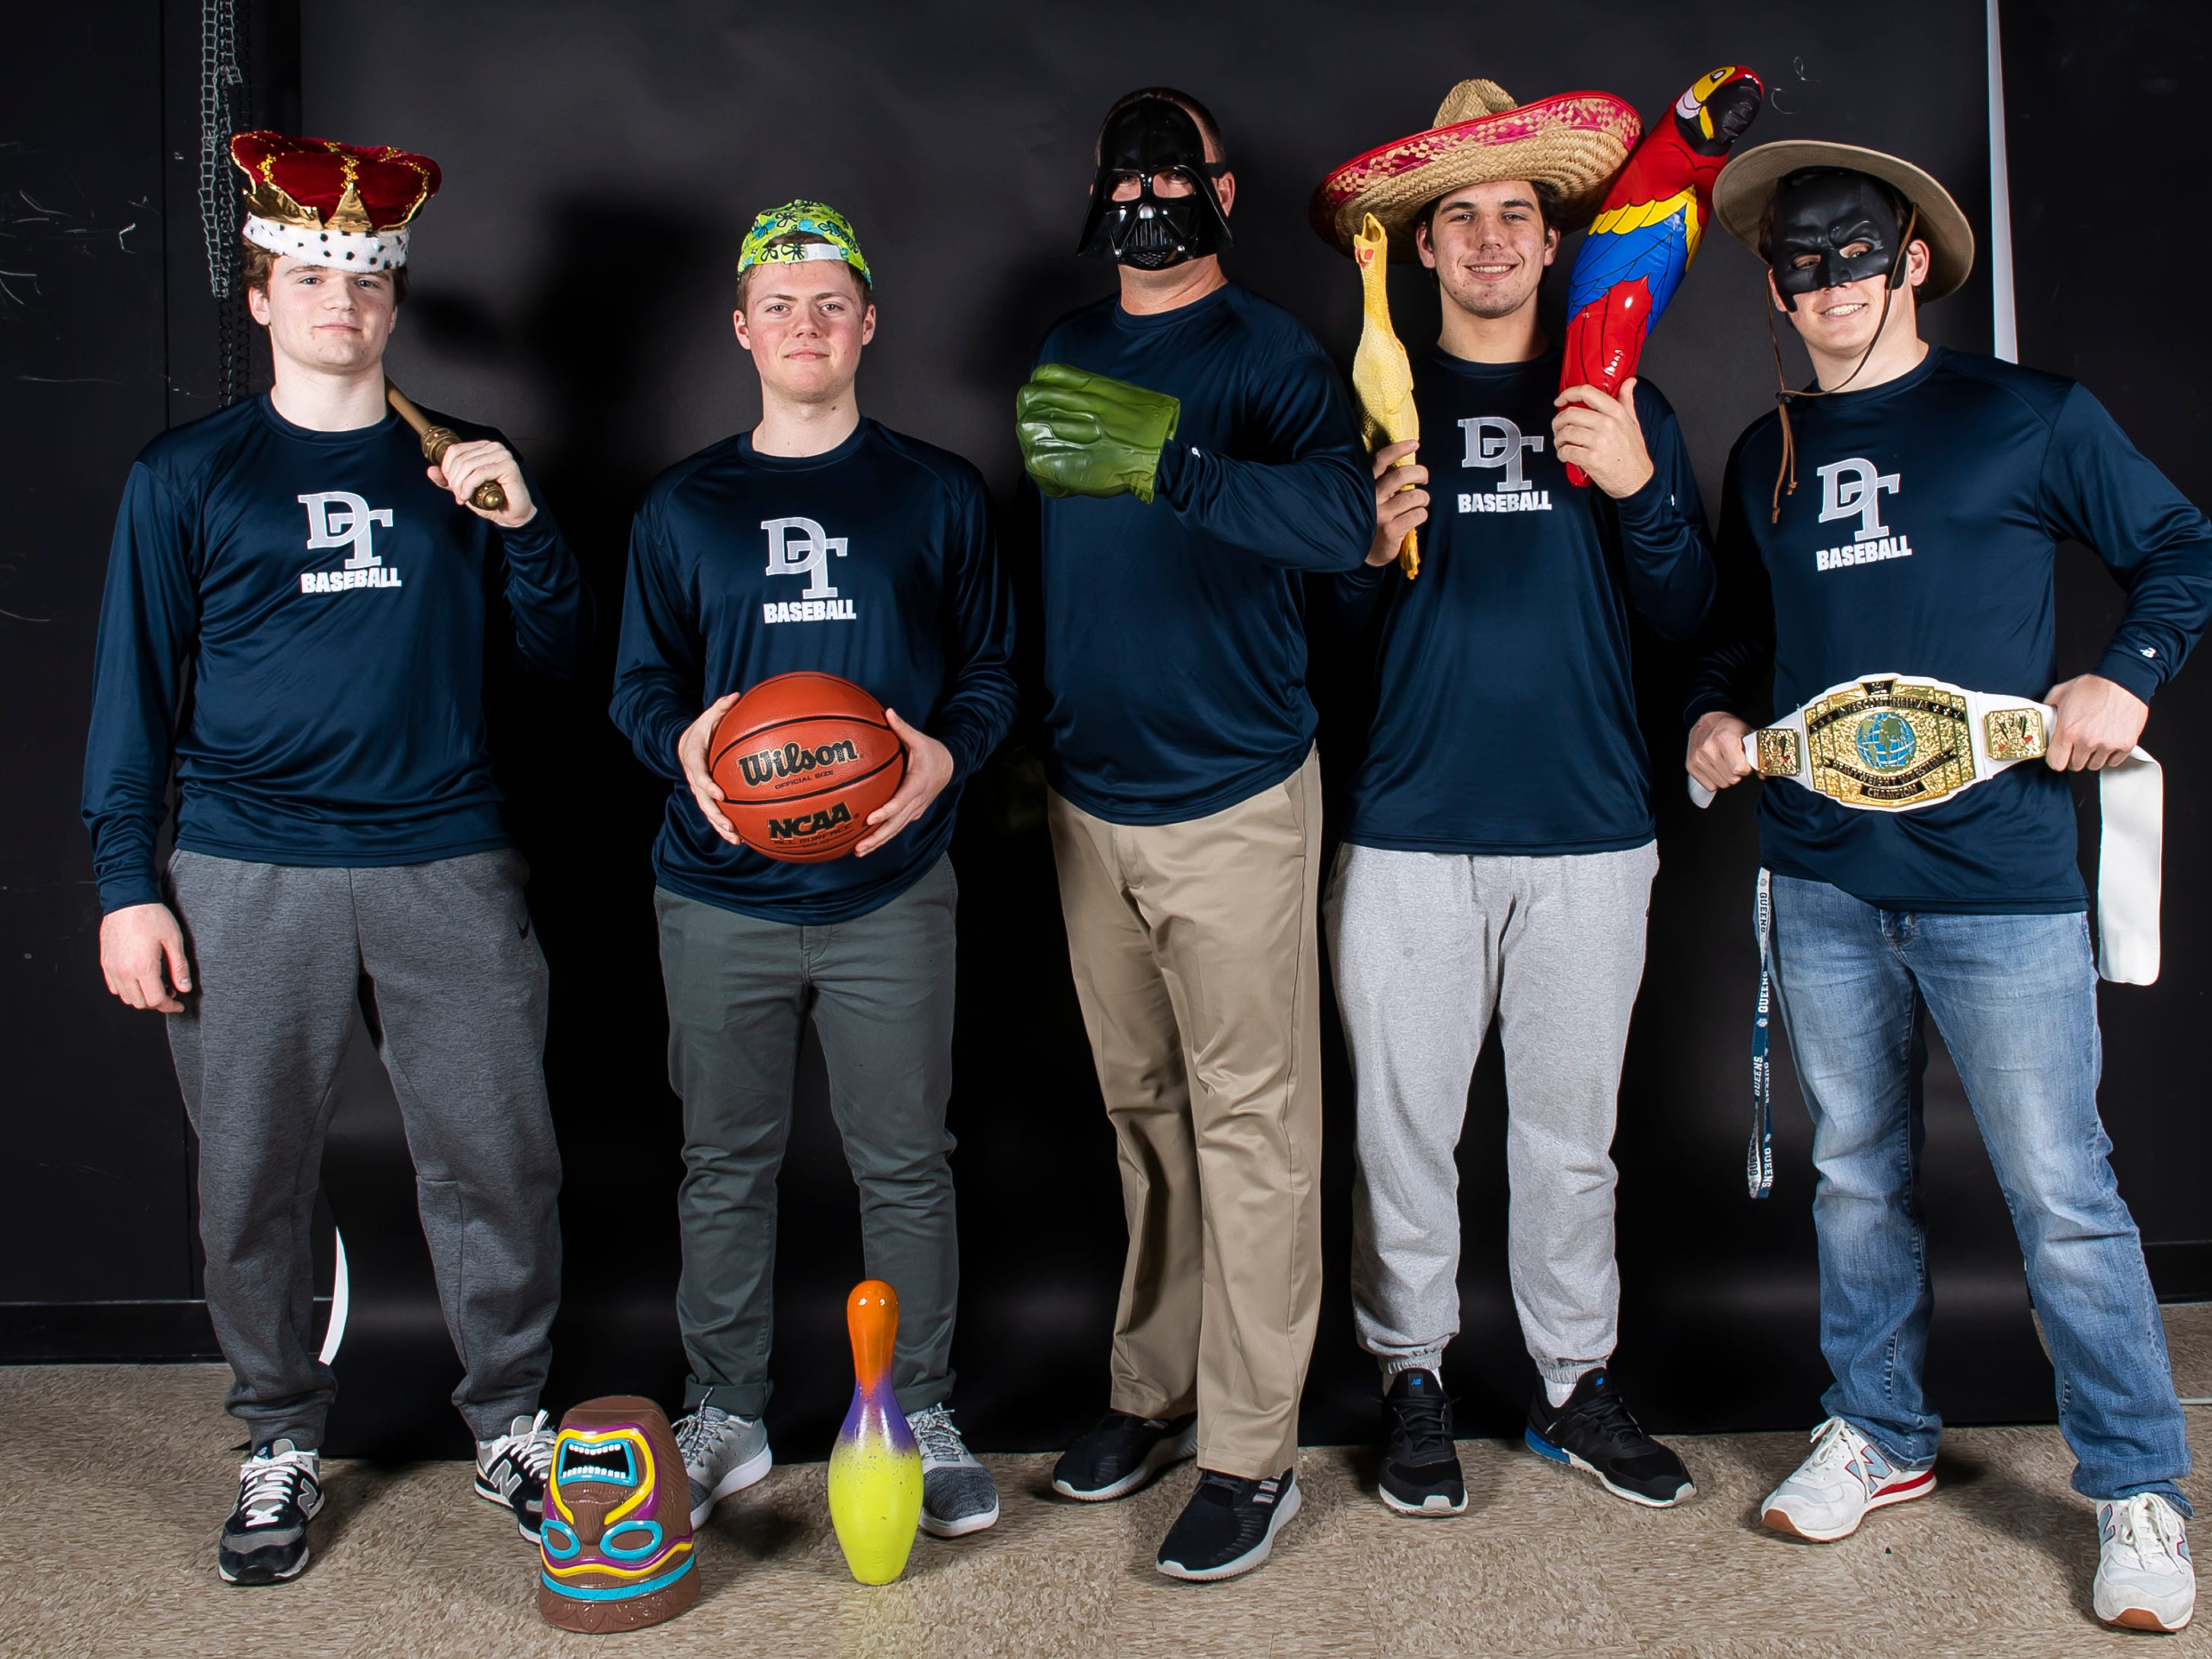 (From left) Dallastown baseball's Chase Hoecke, Alex Weakland, coach Greg Kinneman, Peter Capobianco and Julian Bailey strike a pose in the GameTimePA photo booth during spring sports media day in York Sunday, March 10, 2019.